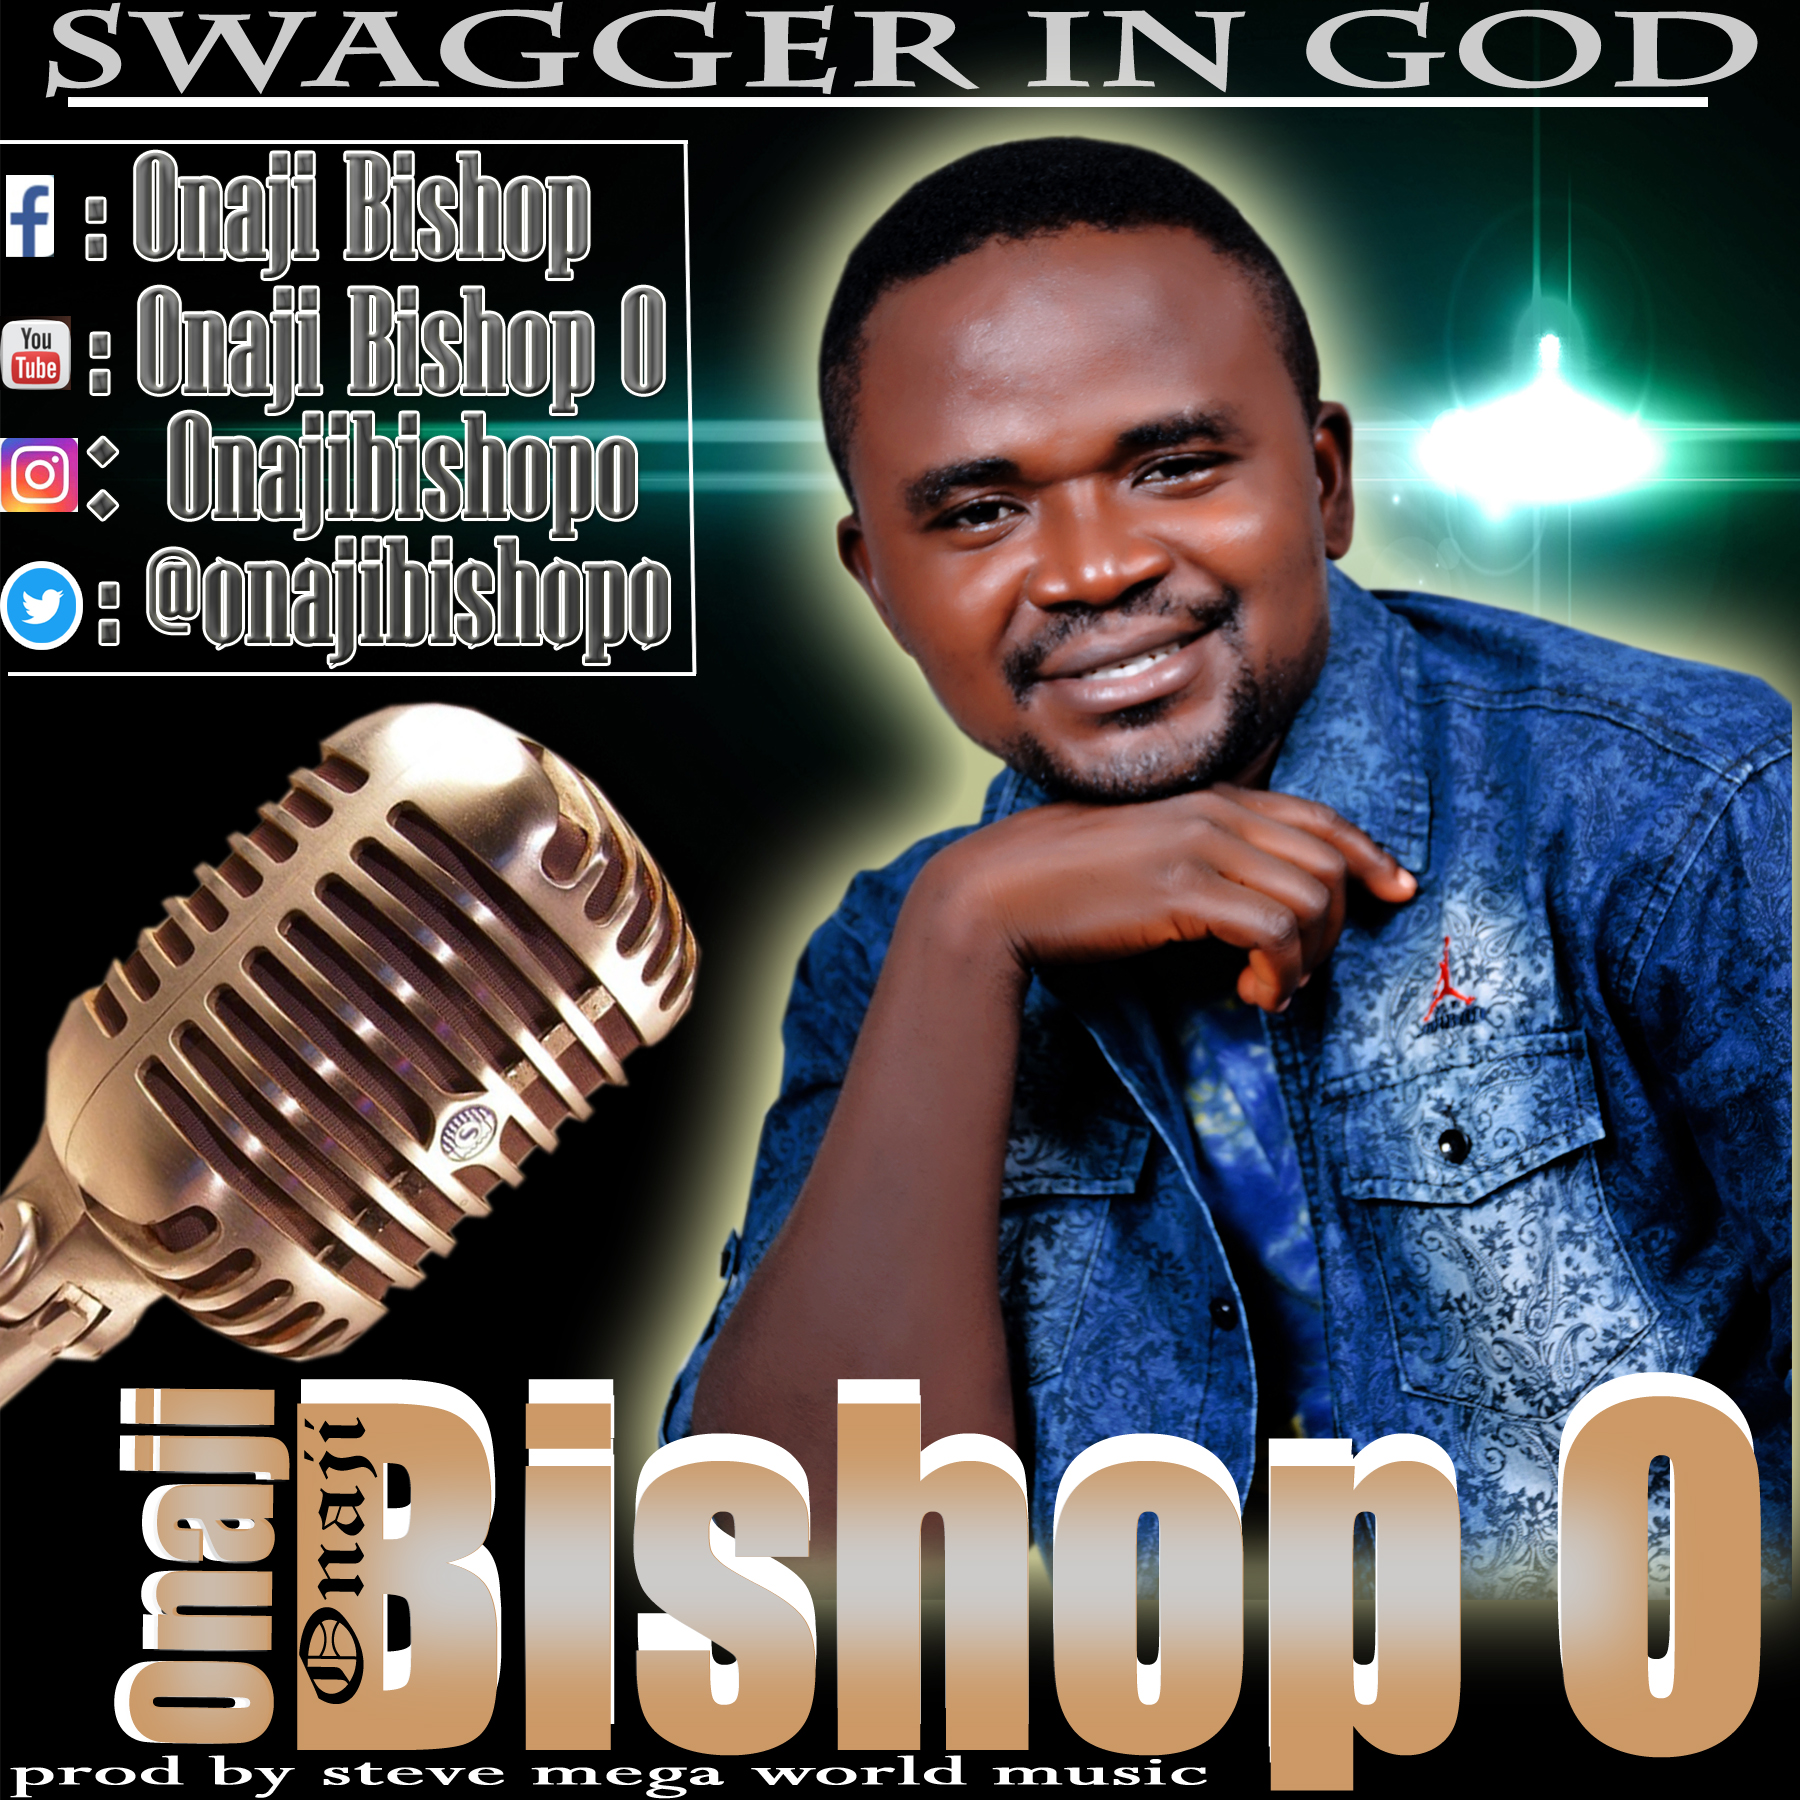 SWAGGER IN GOD - Onaji Bishop O.